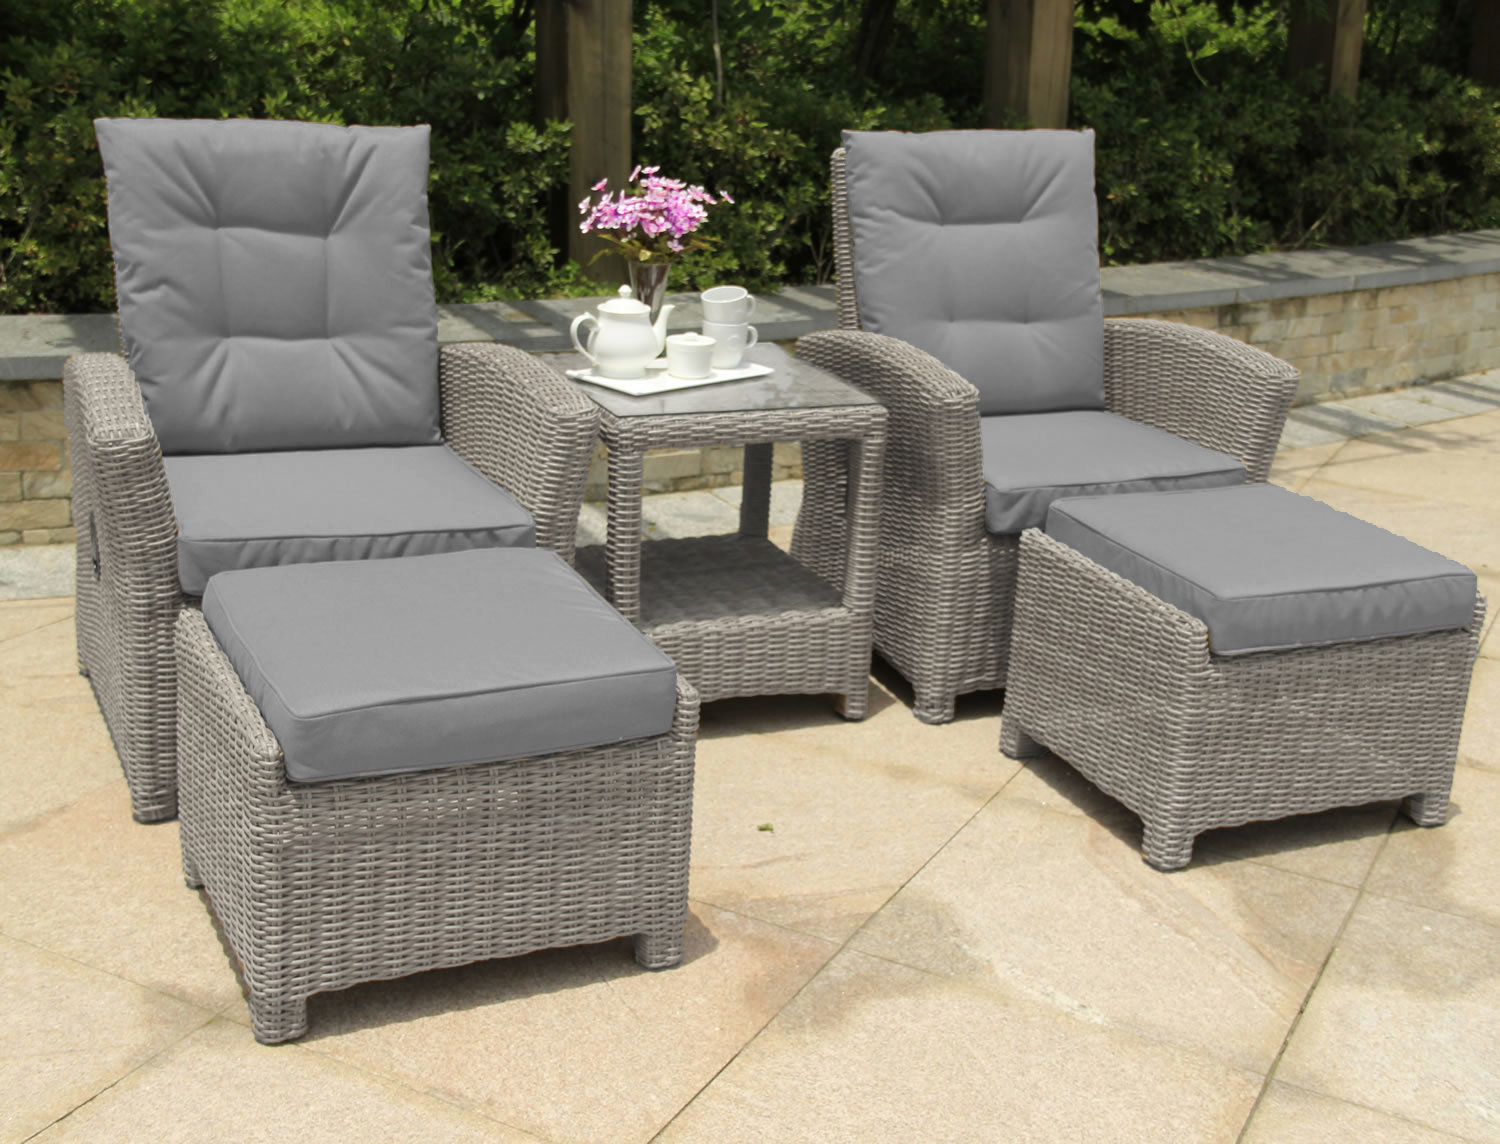 Serenity 2 Seater Recliner Chair Furniture Set Pepper